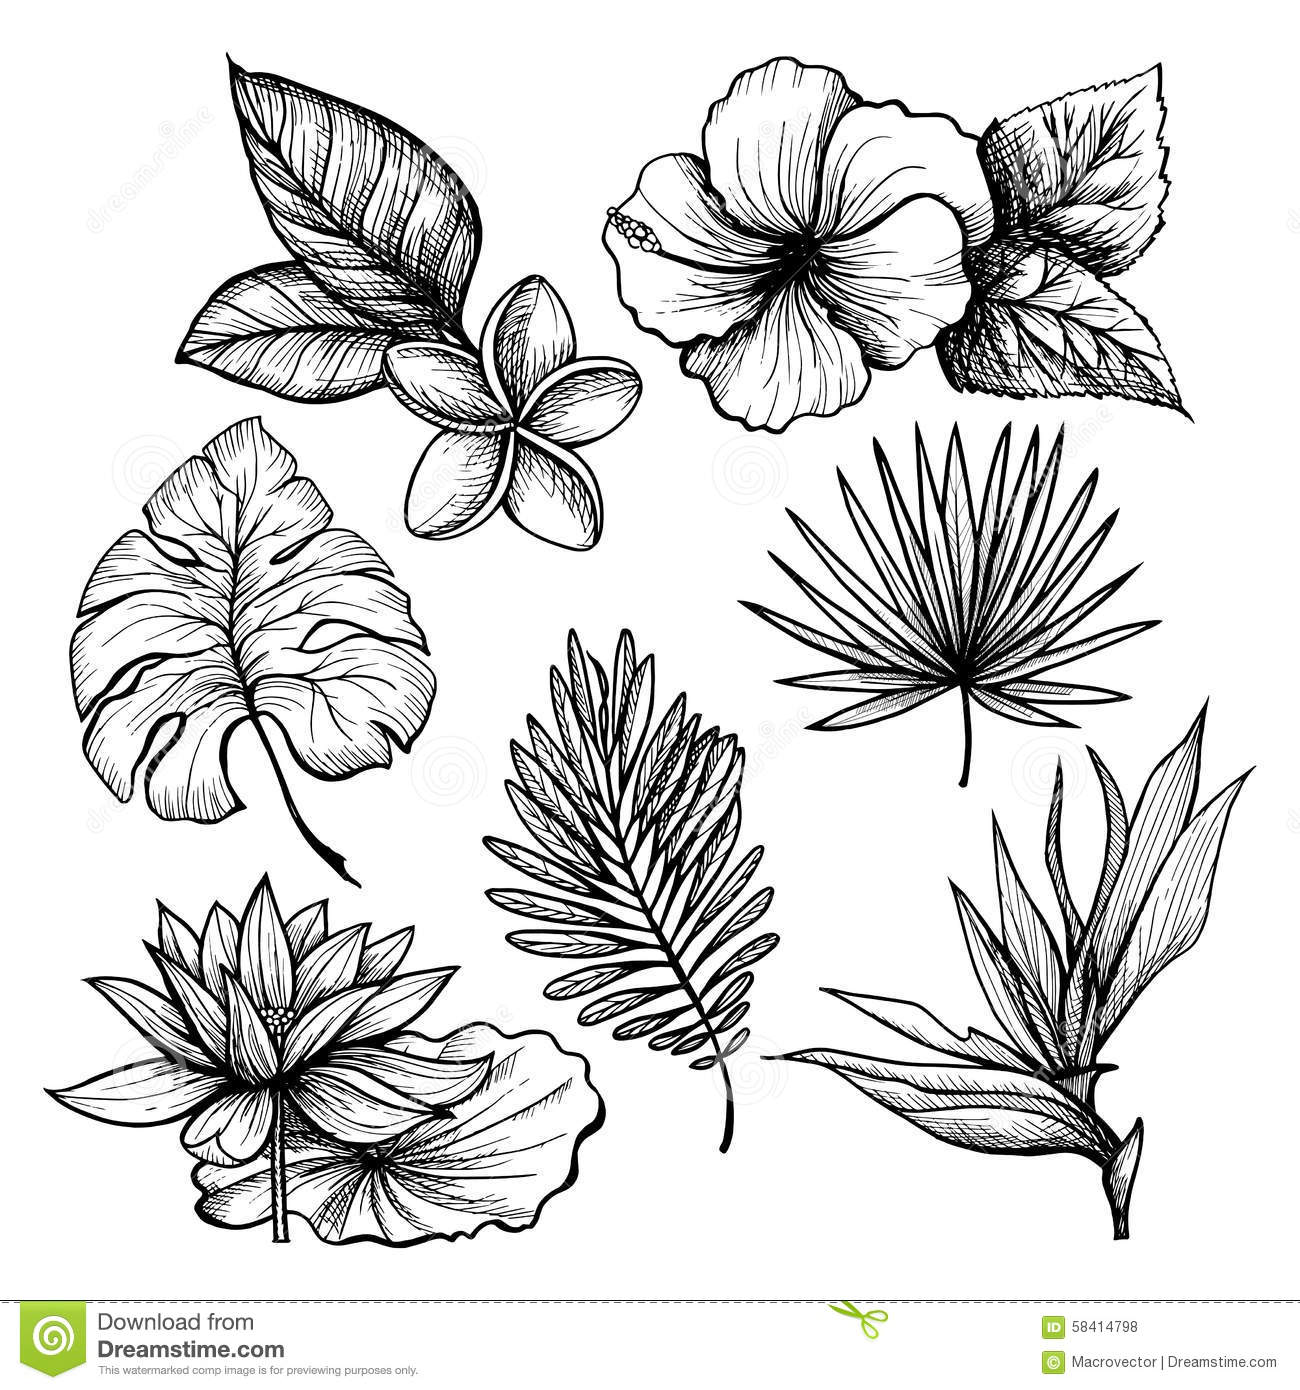 Flower Leaf Line Drawing : Tropical leaves set stock vector illustration of elements